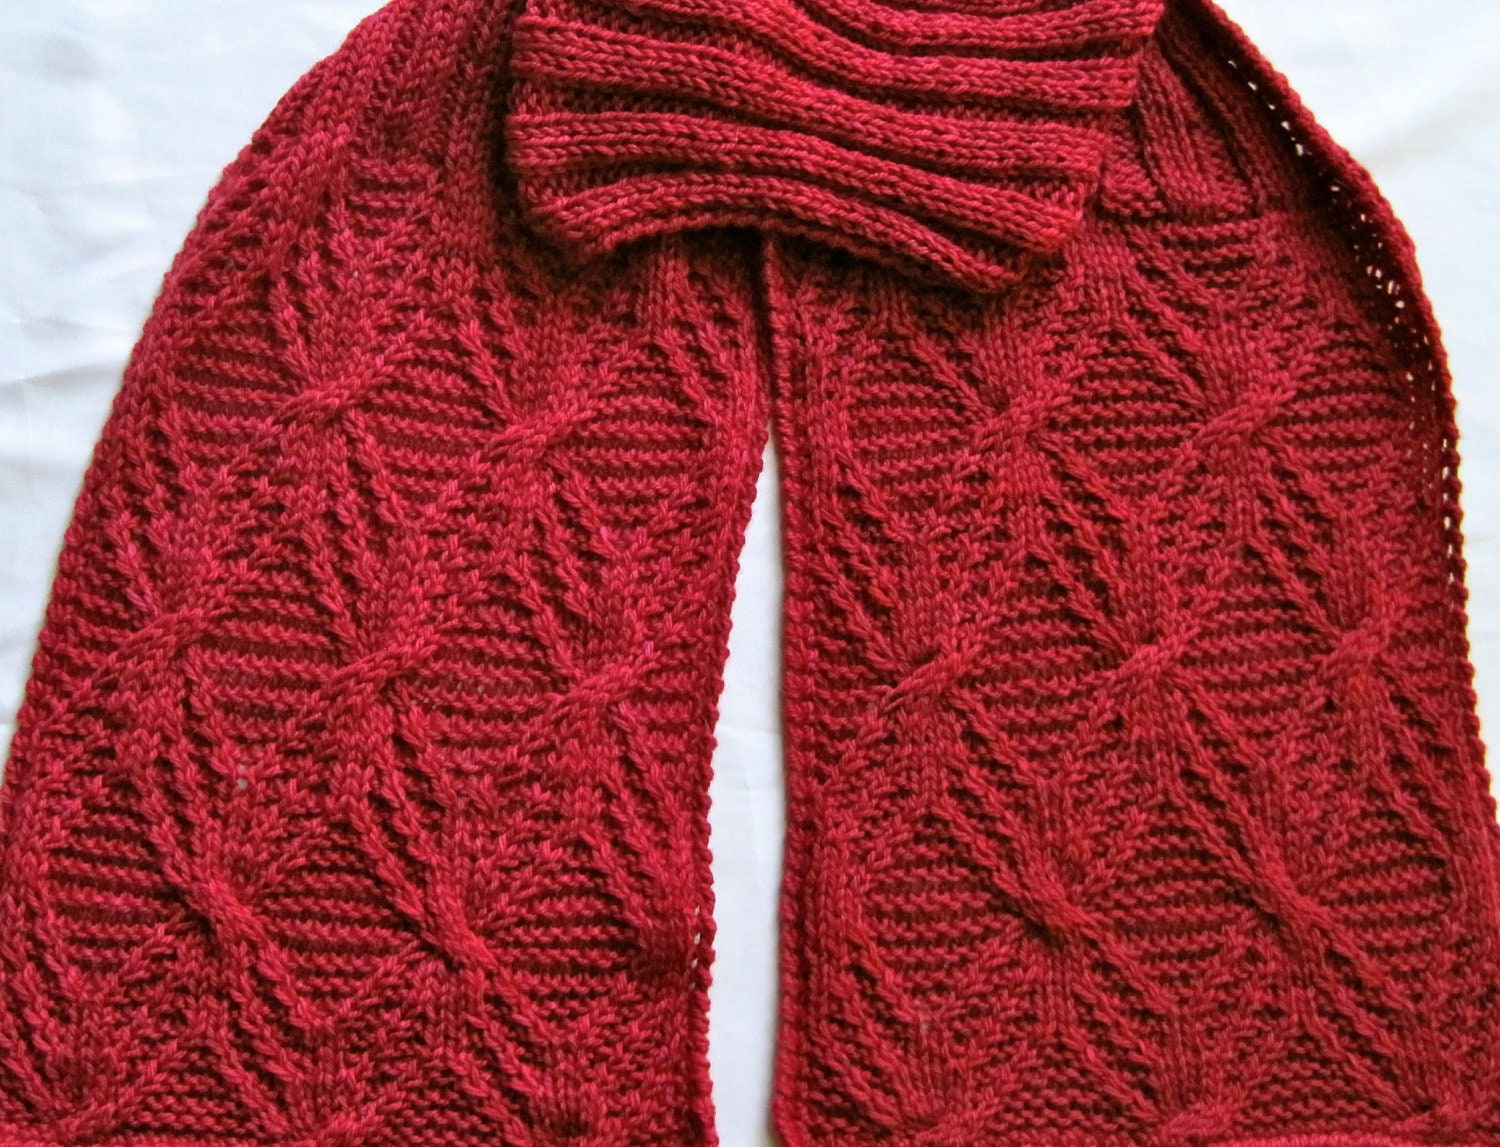 Knit Scarf Pattern: Twisted Branches Turtleneck Scarf